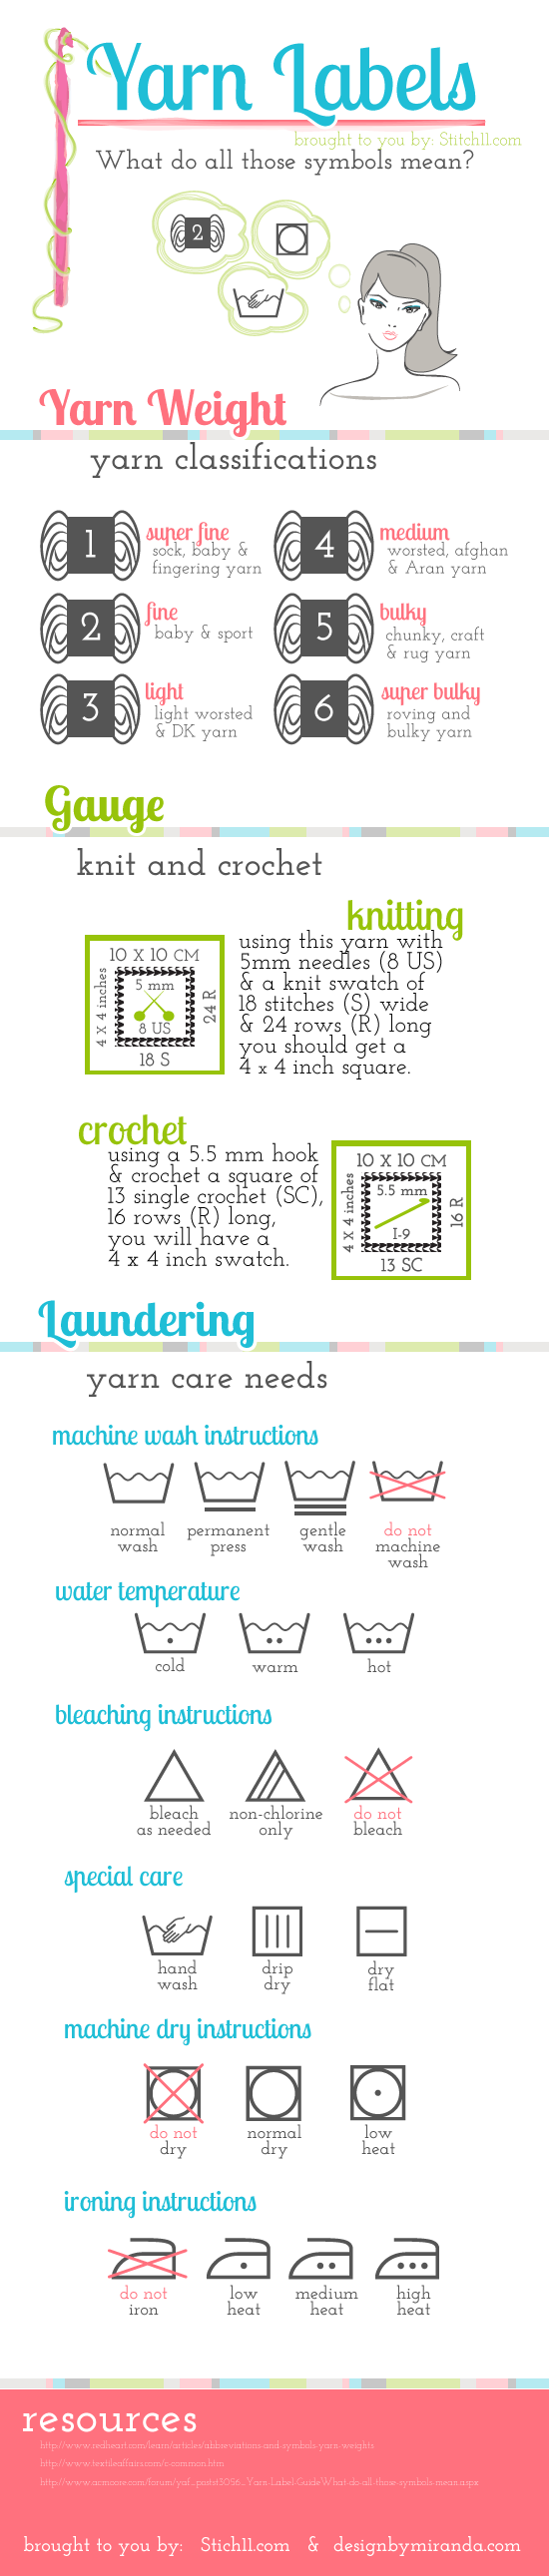 yarn labels